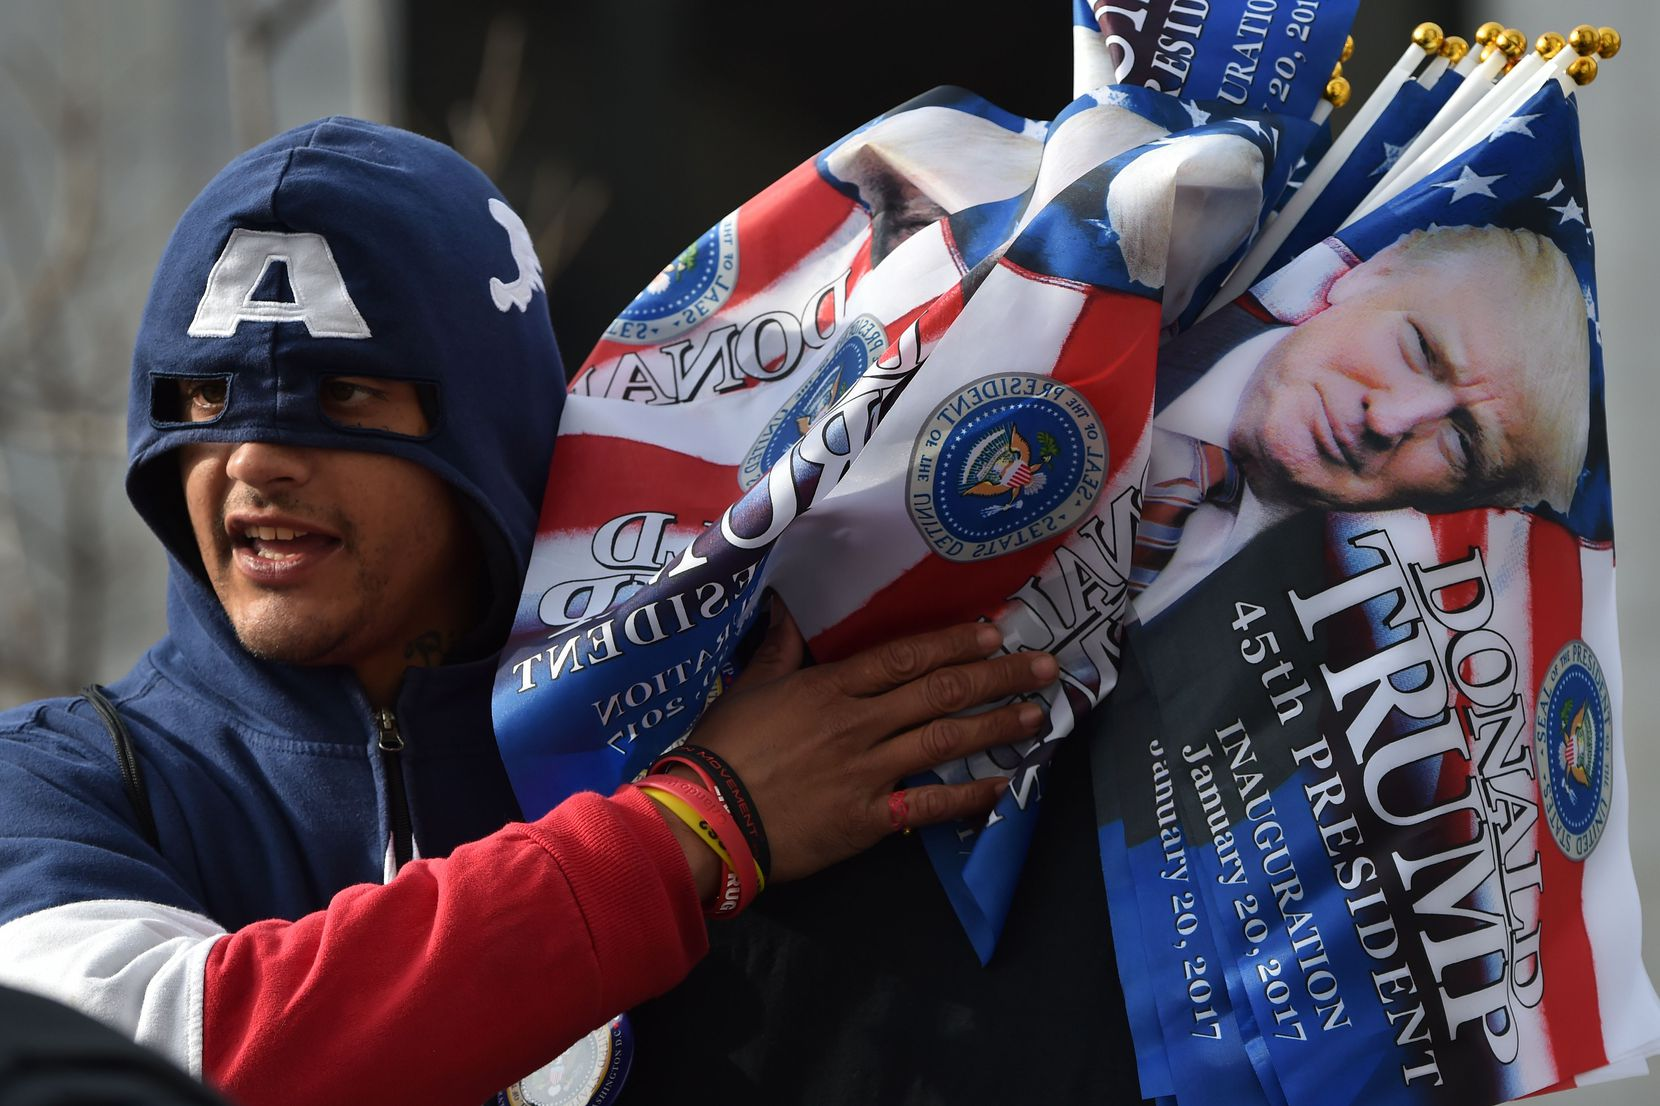 A vendor in a Captain America hoodie sells souvenir flags in a Washington, DC, January 19, 2017, one day ahead of the inauguration of the US President-elect Donald Trump.  / AFP PHOTO / PAUL J. RICHARDSPAUL J. RICHARDS/AFP/Getty Images